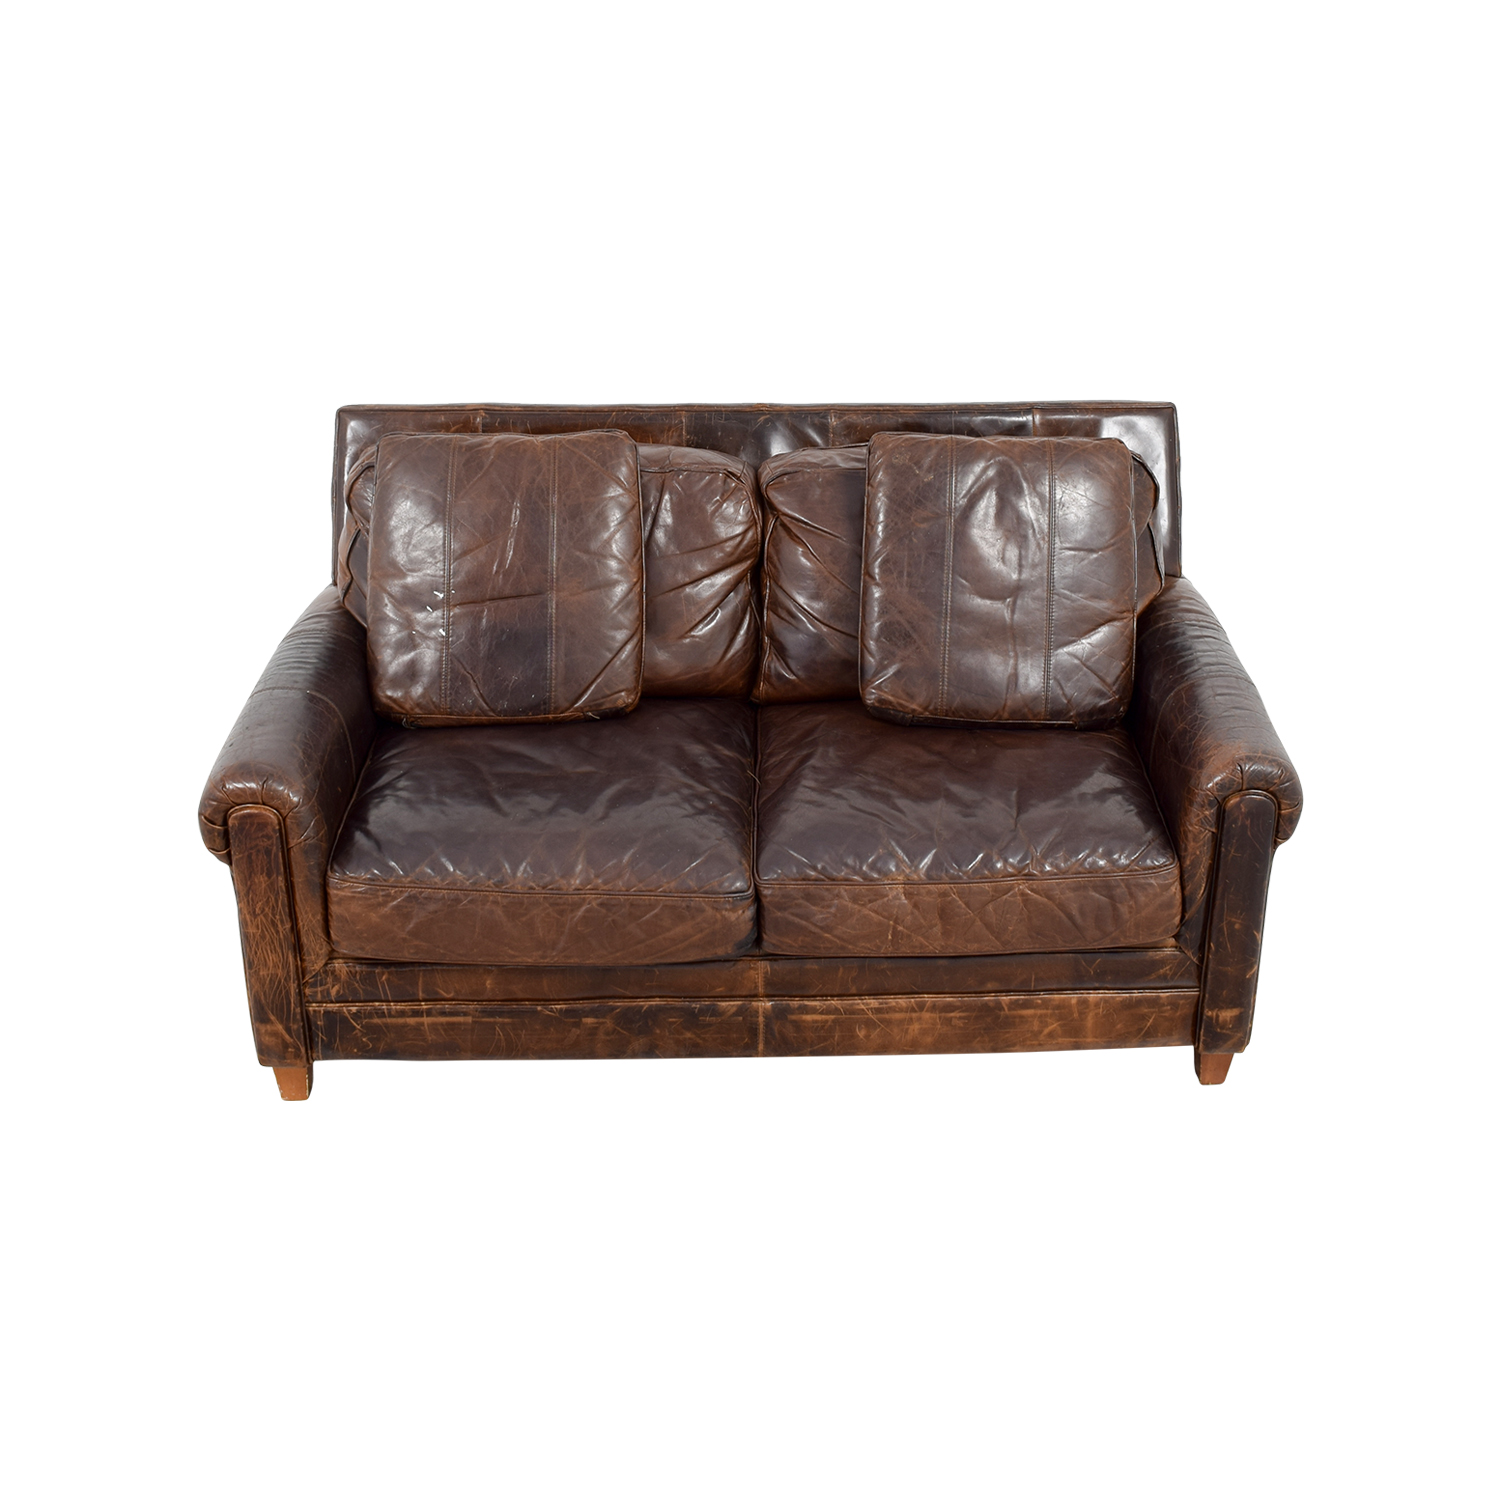 Jennifer Convertibles Jennifer Convertibles Brown Leather Loveseat Sofas